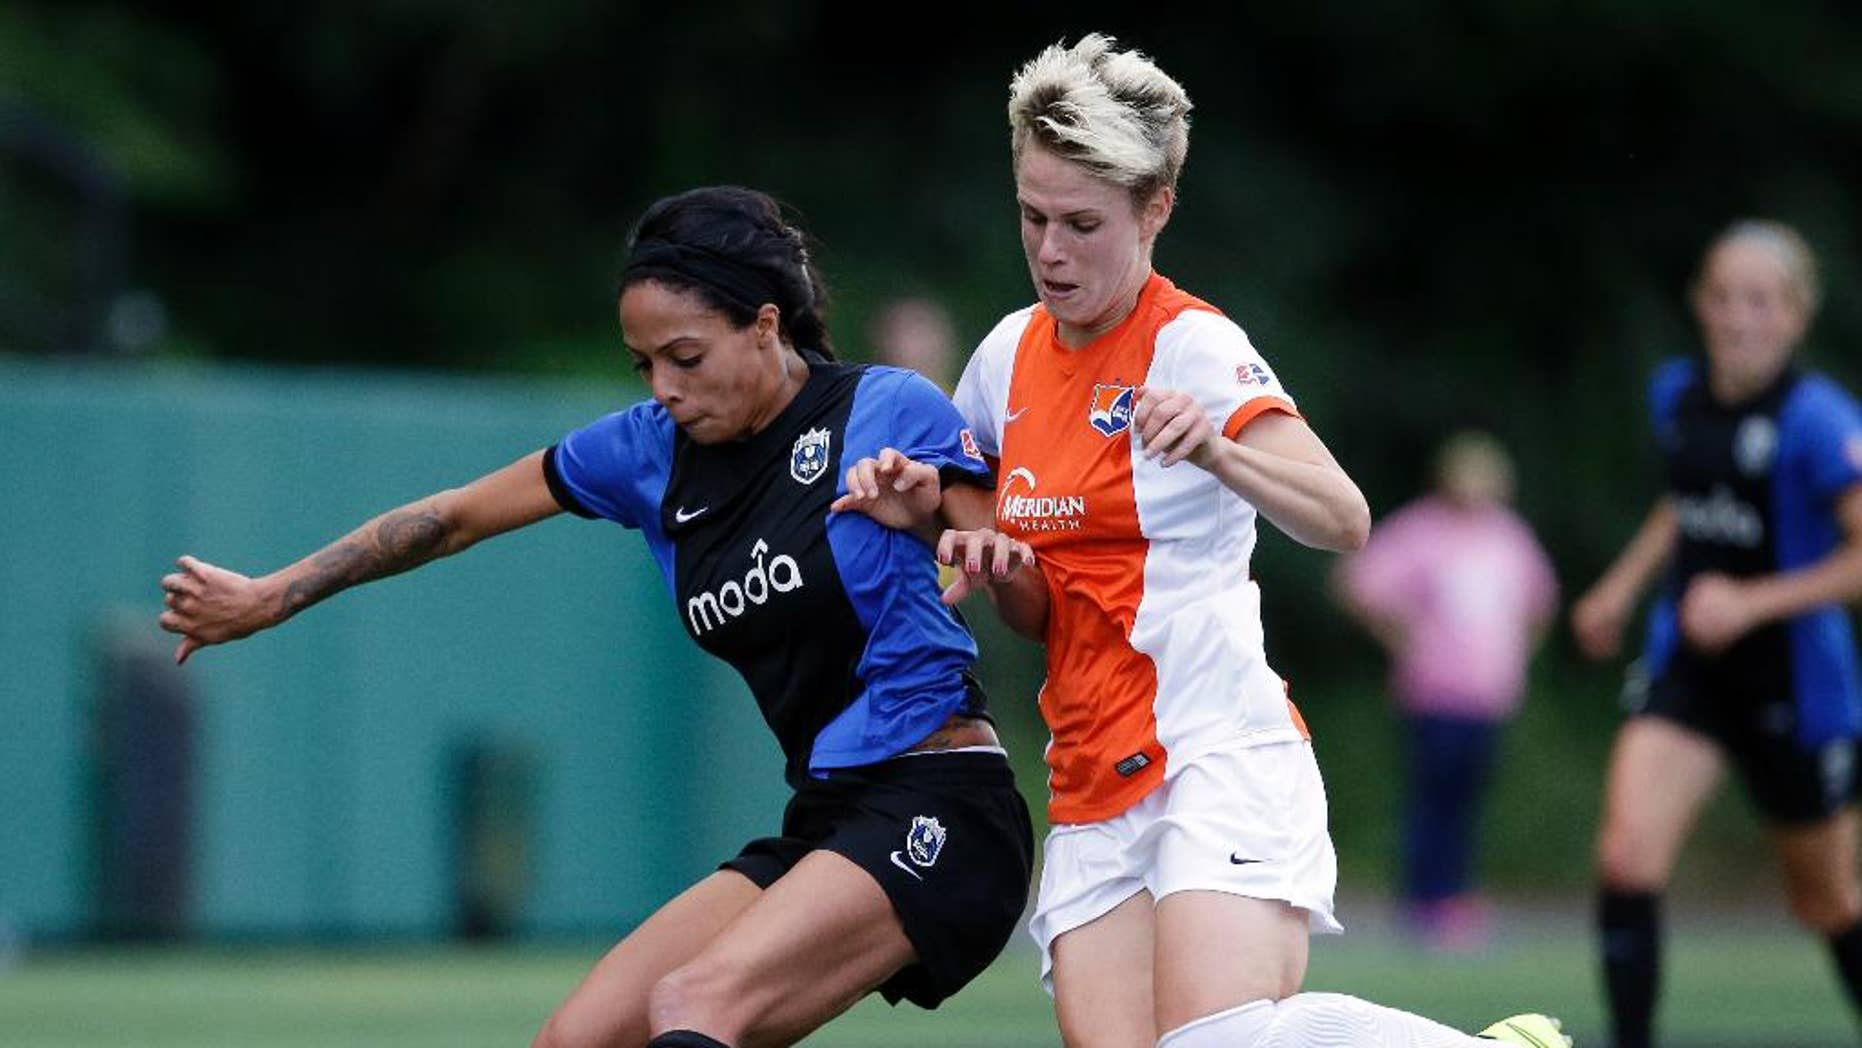 FILE - In this June 28, 2014, file photo, Seattle Reign's Sydney Leroux, left, and Sky Blue's Sophie Schmidt vie for the ball in the first half of an NWSL soccer game in Seattle. In the space of about a week, a group of players from the U.S. team wrapped up the regular season with their National Women's Soccer League teams, got together for an international friendly against Switzerland, and now face off in the NWSL playoffs. The country's top players are maintaining a delicate balance between supporting the NWSL at home while gearing up for a busy two years that include the women's World Cup in Canada next summer and then 2016 Rio Olympics. (AP Photo/Elaine Thompson, File)